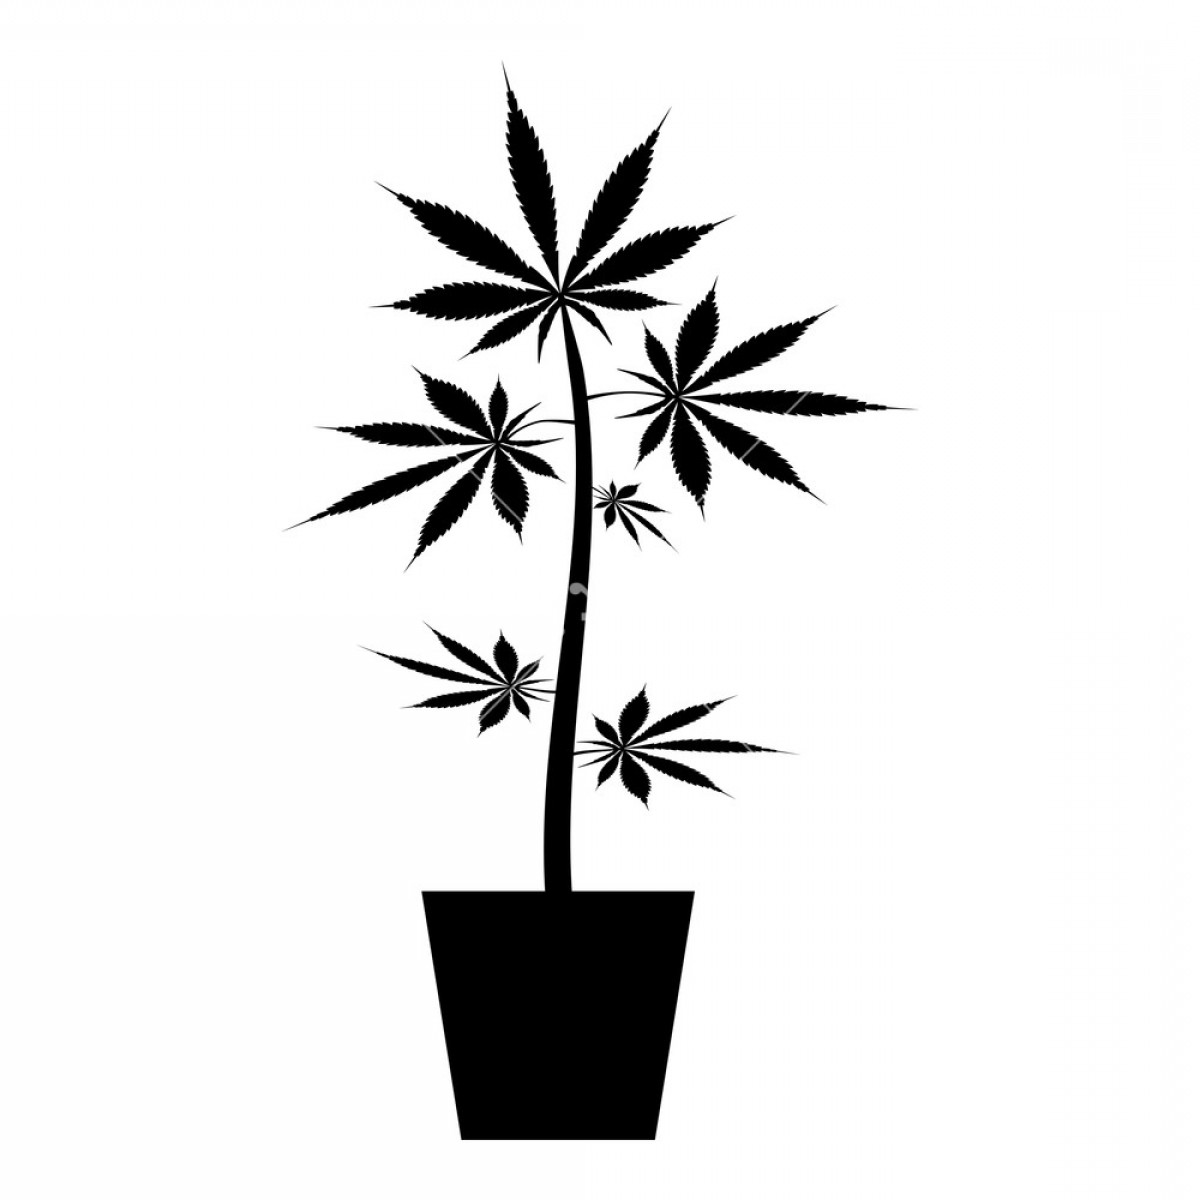 Black And White Vector Image Of Weed Plants: Pot Of Marijuana Cannabic In Pot Hemp Icon Black Color Vector Illustration Flat Style Simple Image Somhxnqpejtvg